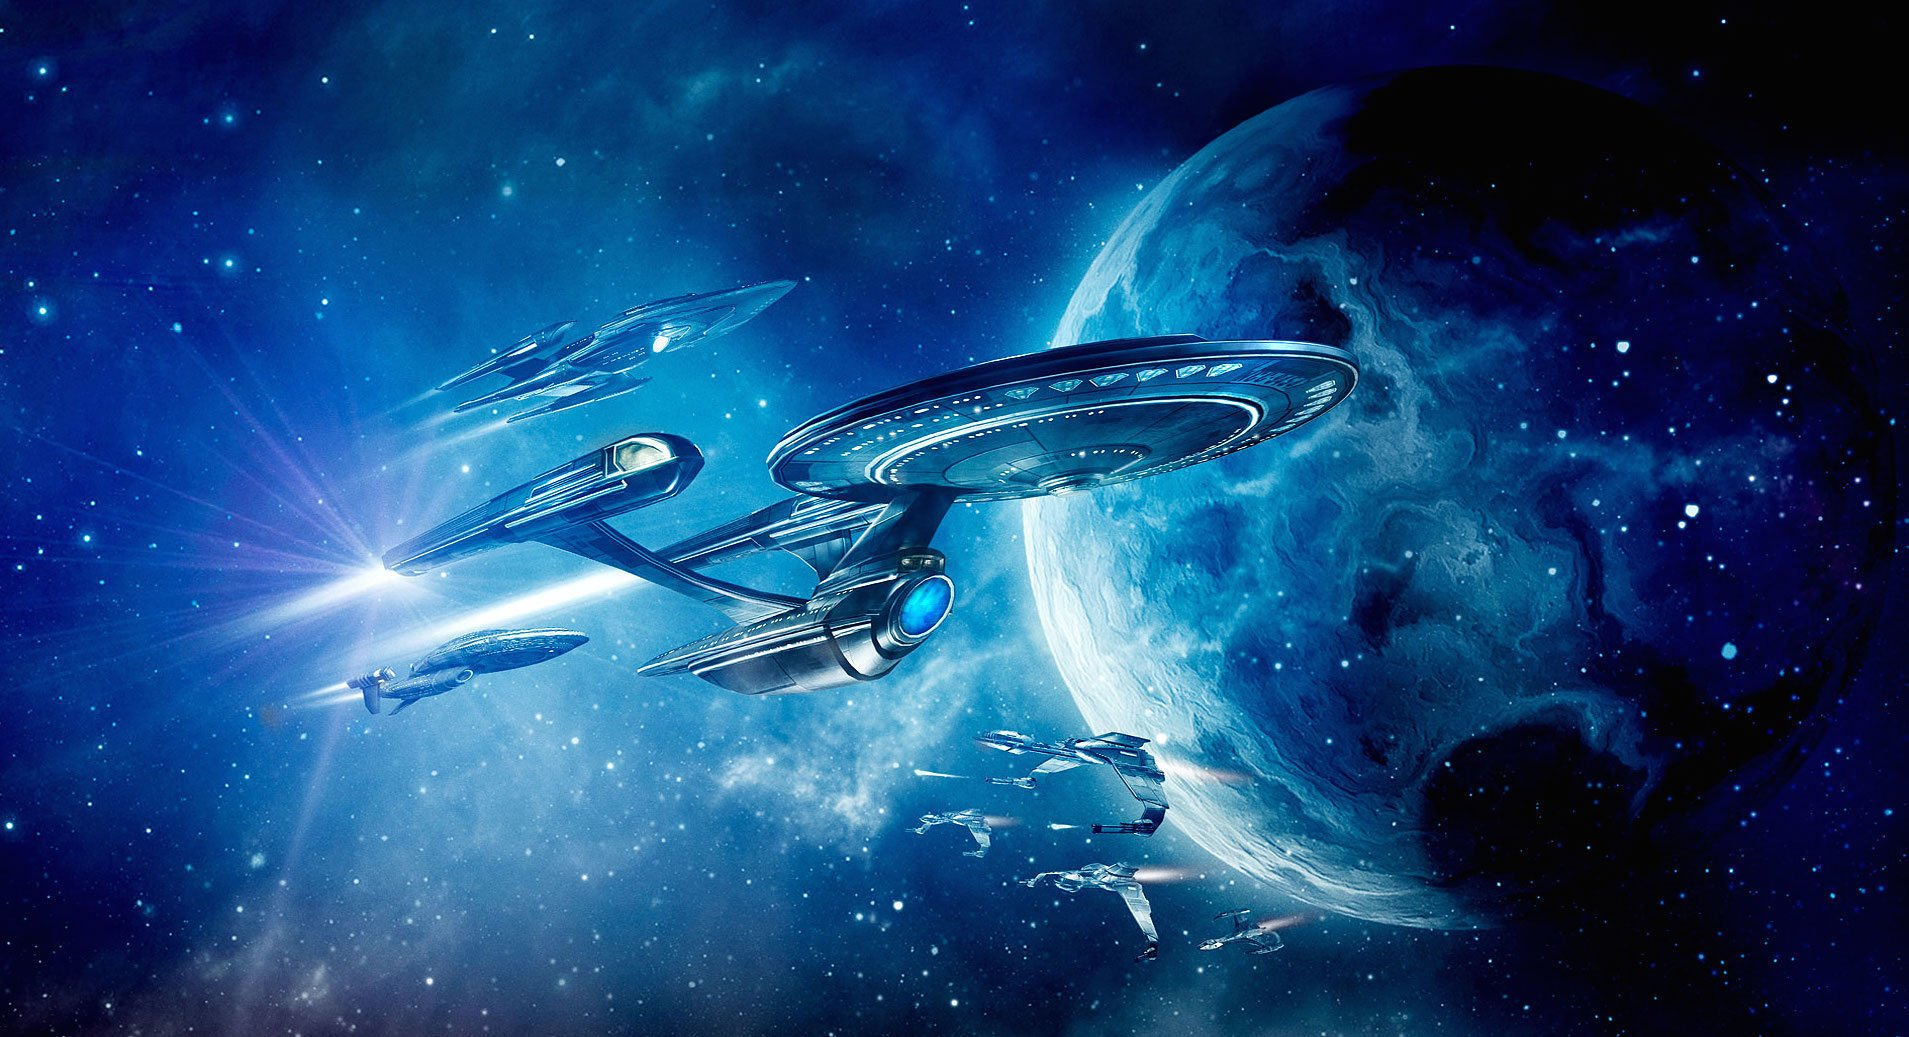 Space Star Trek Discovery , HD Wallpaper & Backgrounds